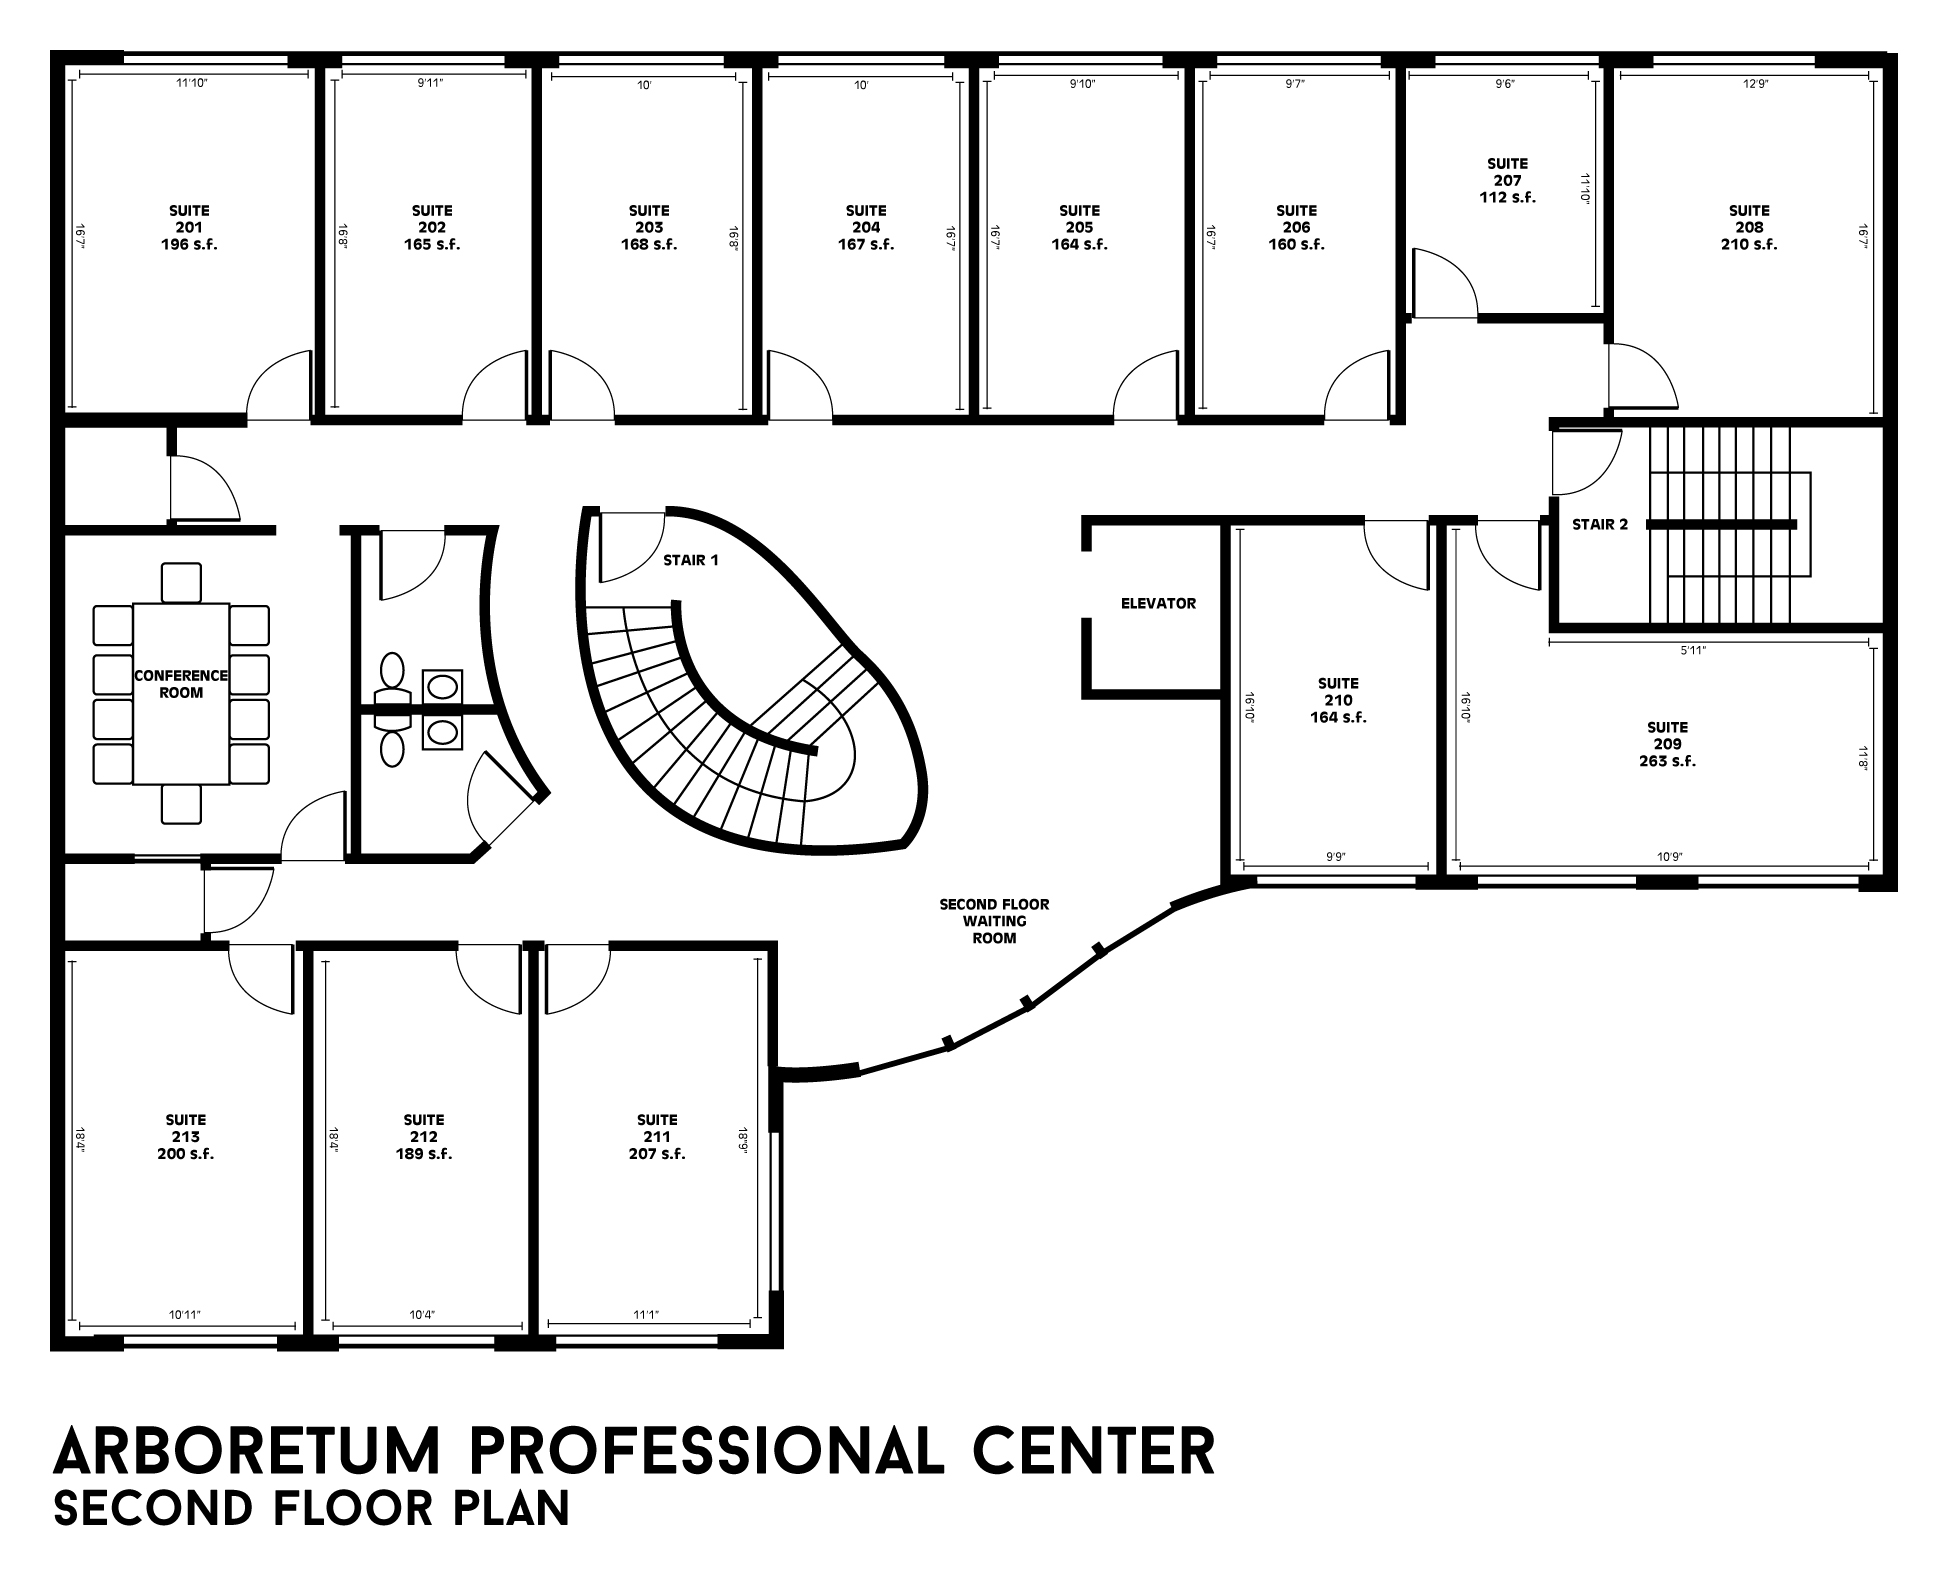 Building floor plans arboretum professional center Building floor plans